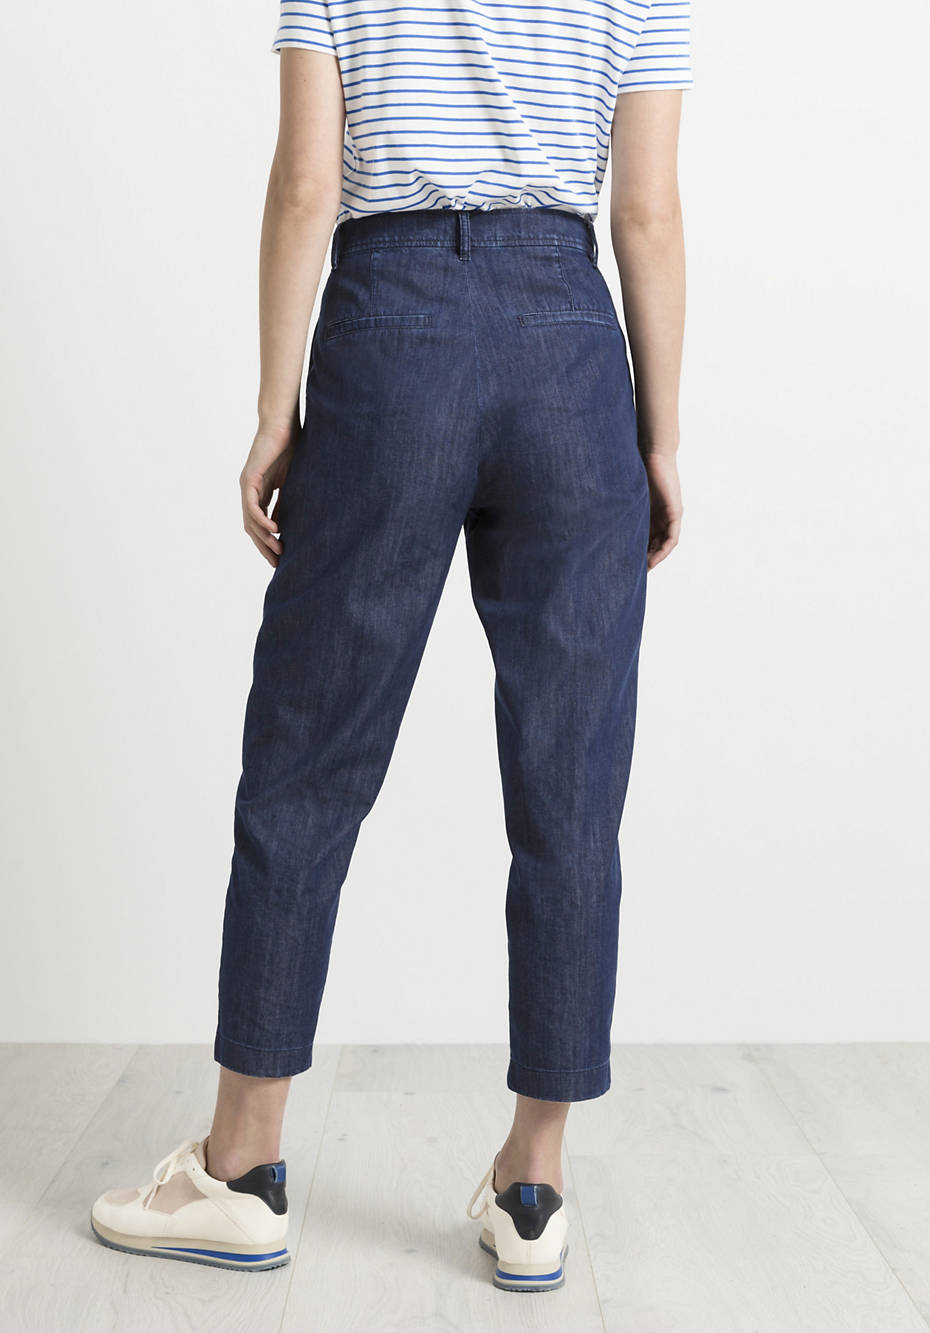 Jeans made from pure organic denim